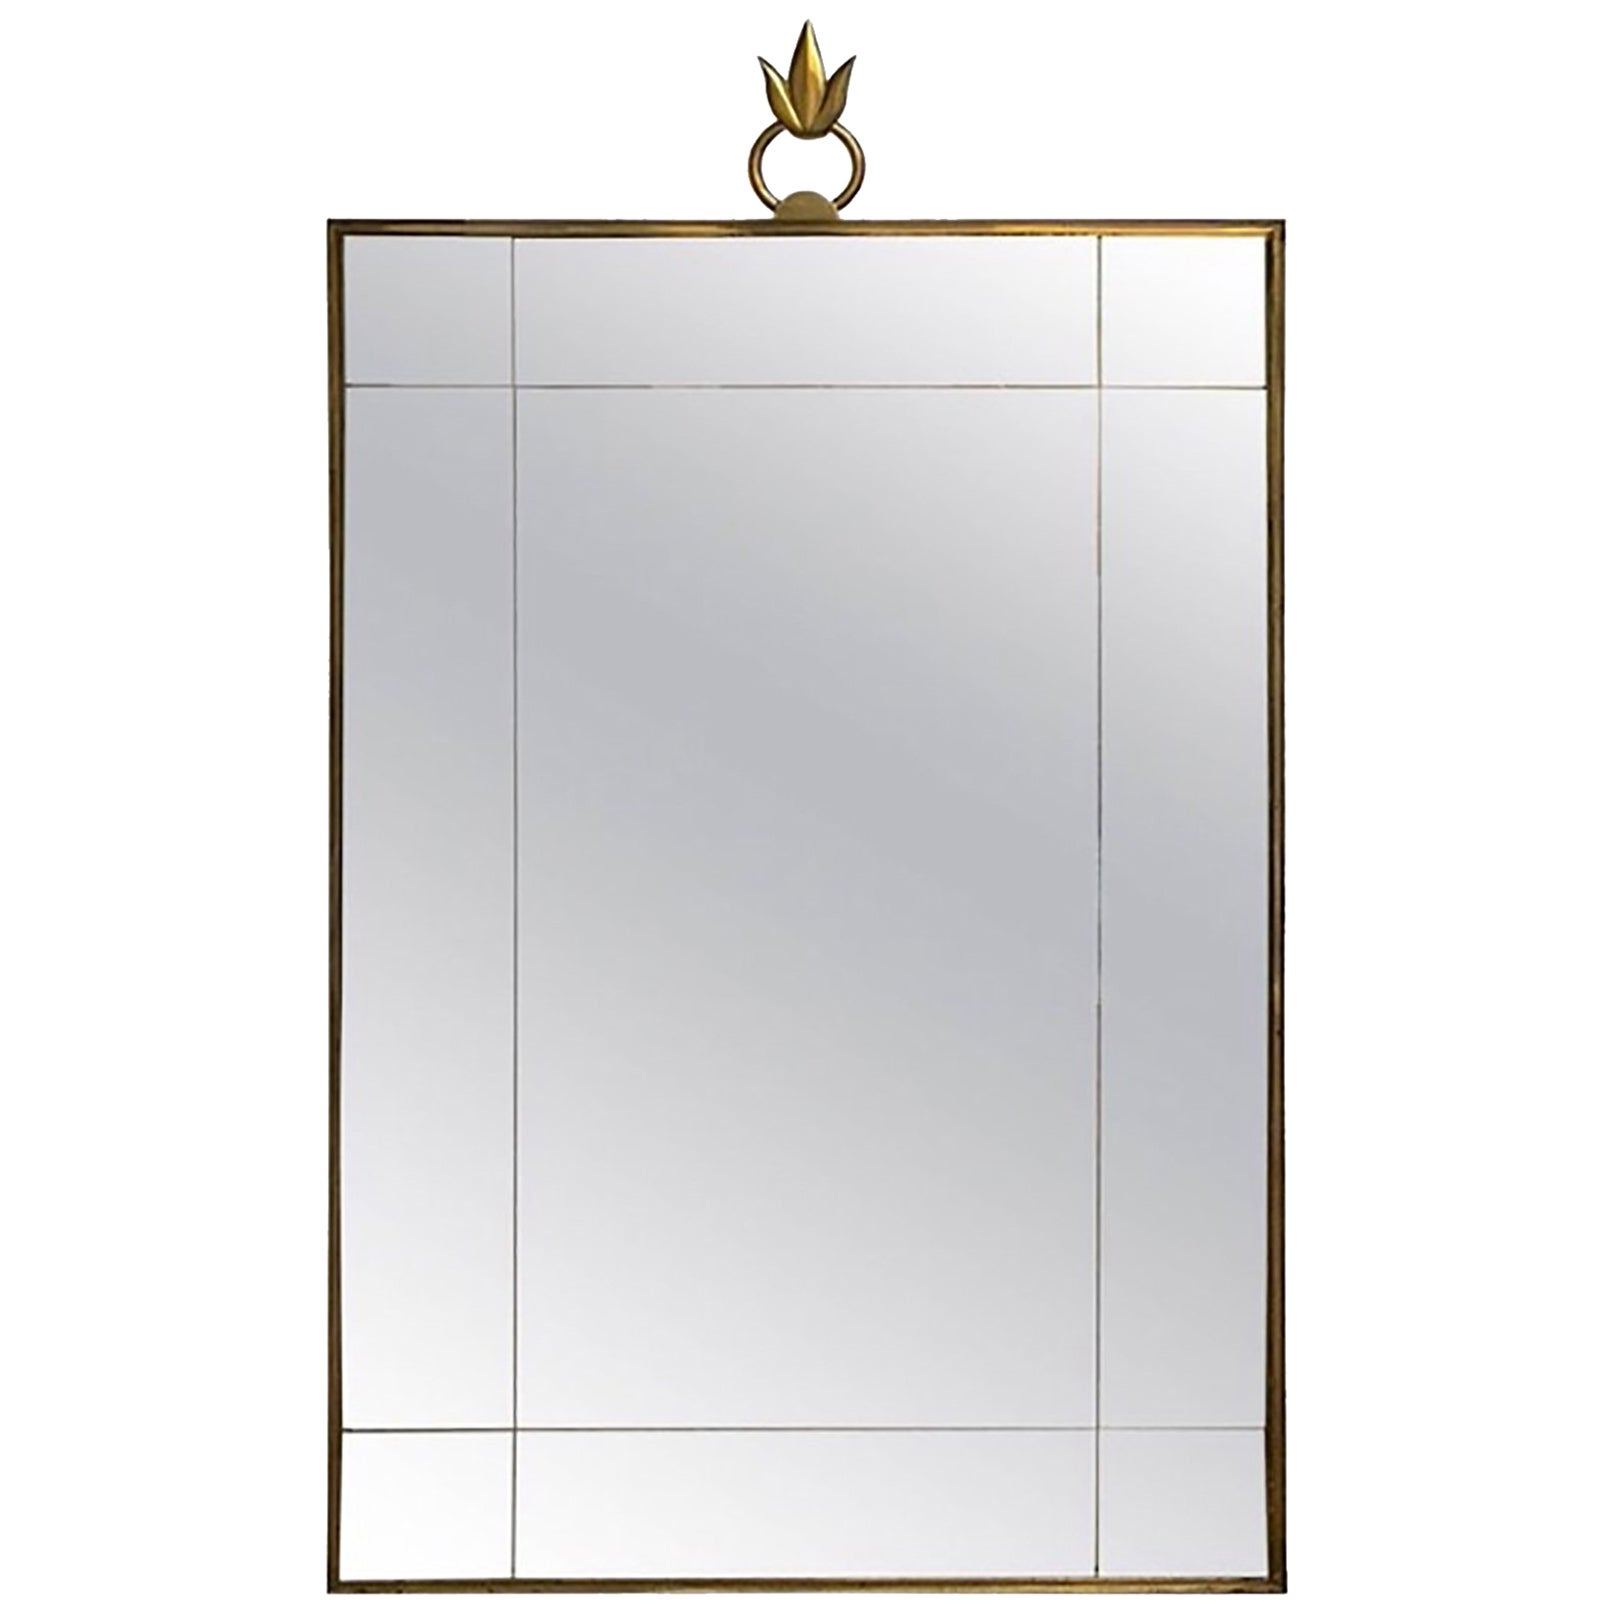 2019 Art Deco French Wall Mirror In The Style Of Andre Arbus Regarding Dandre Wall Mirrors (View 2 of 20)